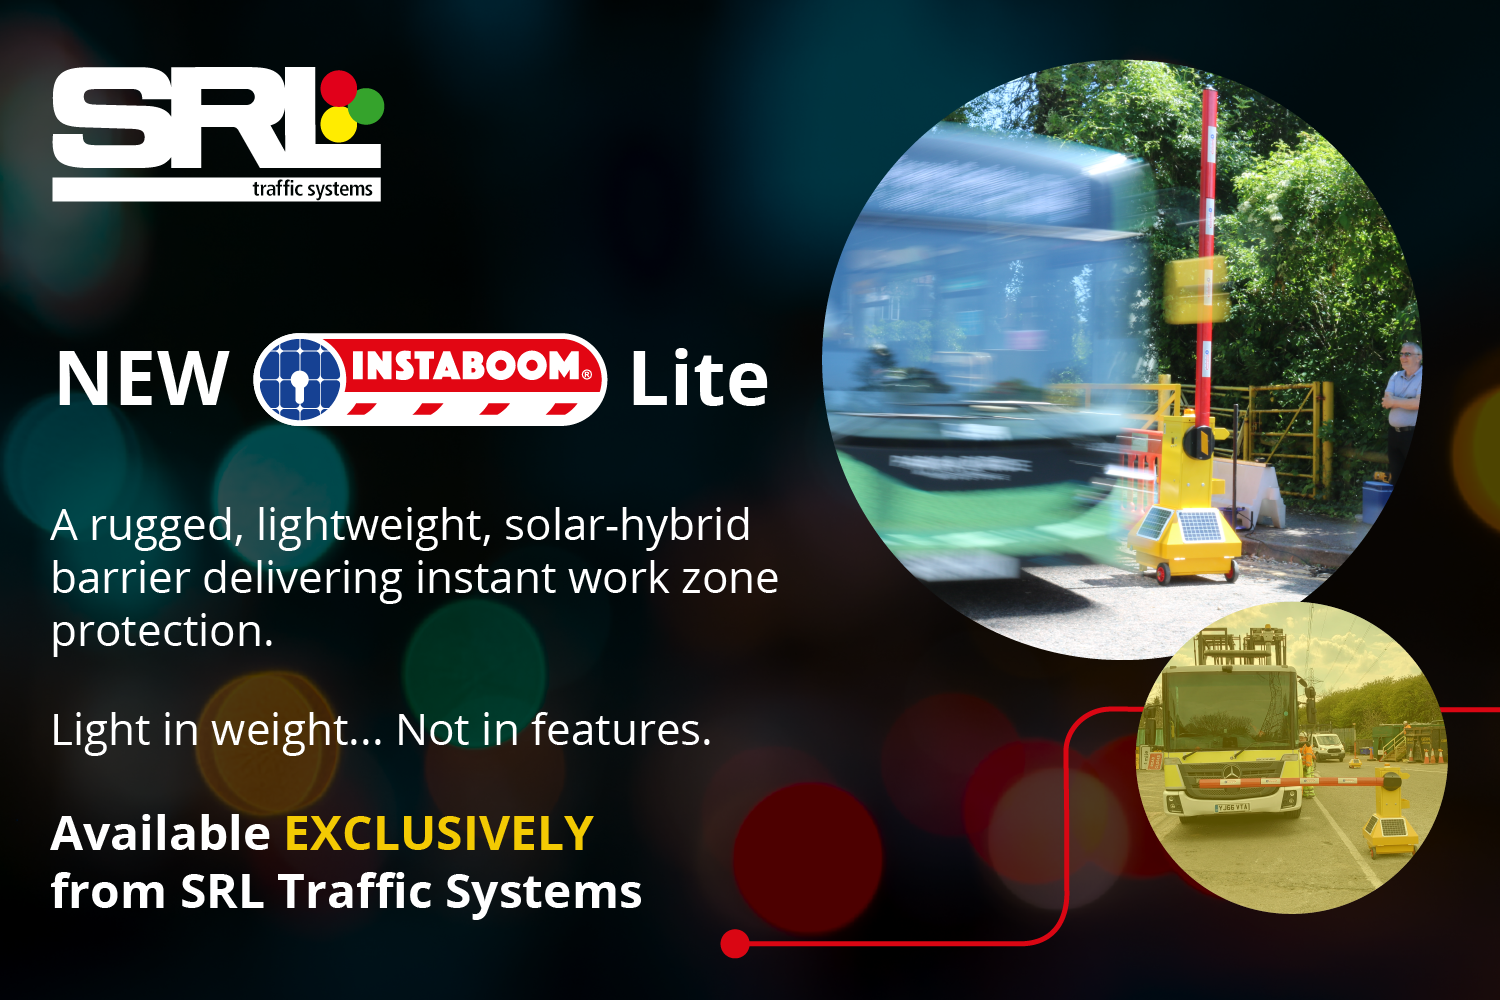 New Instaboom Lite now available for hire exclusively from SRL